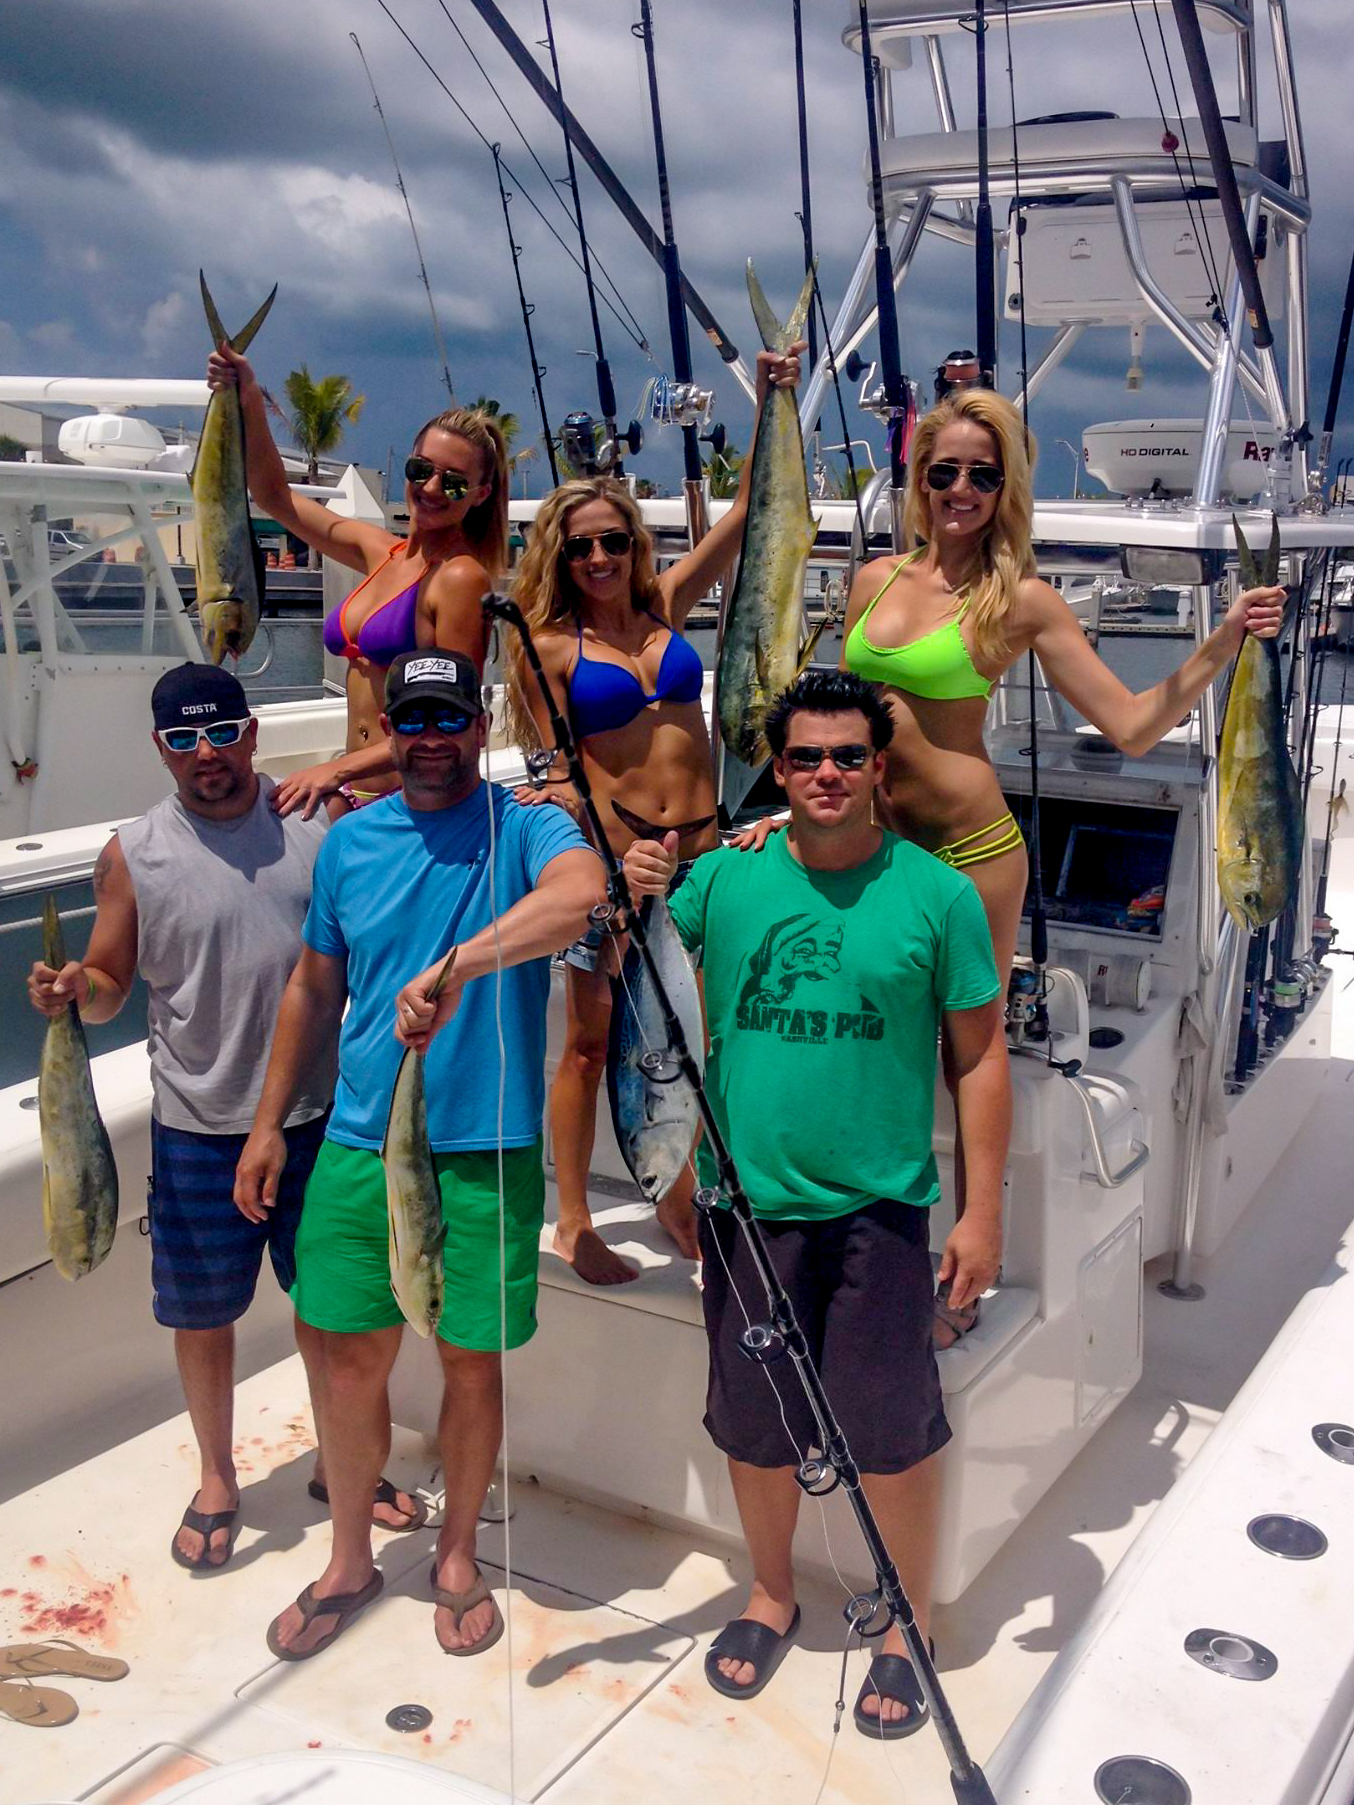 https://0201.nccdn.net/1_2/000/000/17f/bd5/key-west-fishing-charters-compass-rose-38.jpg